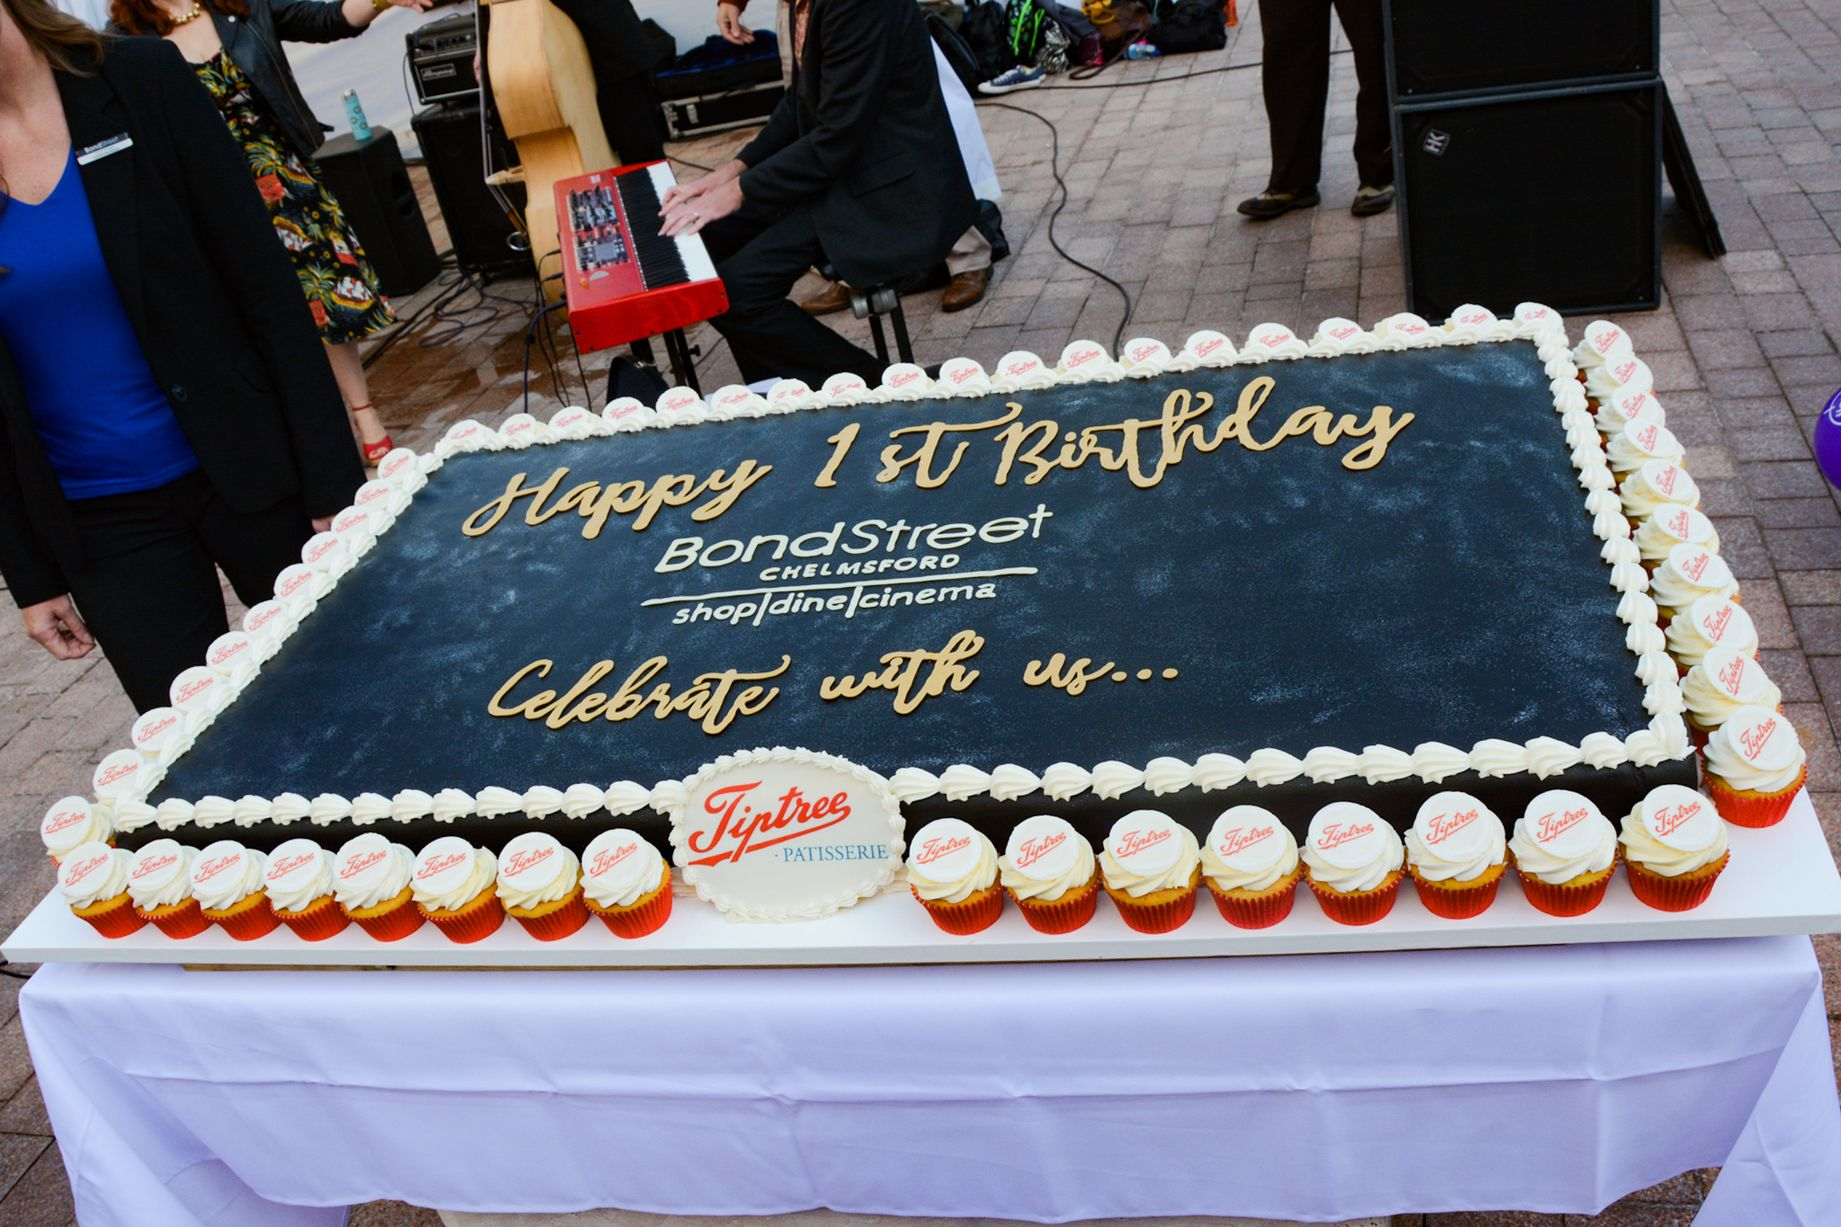 Bond-Street-first-birthday-cake.jpg